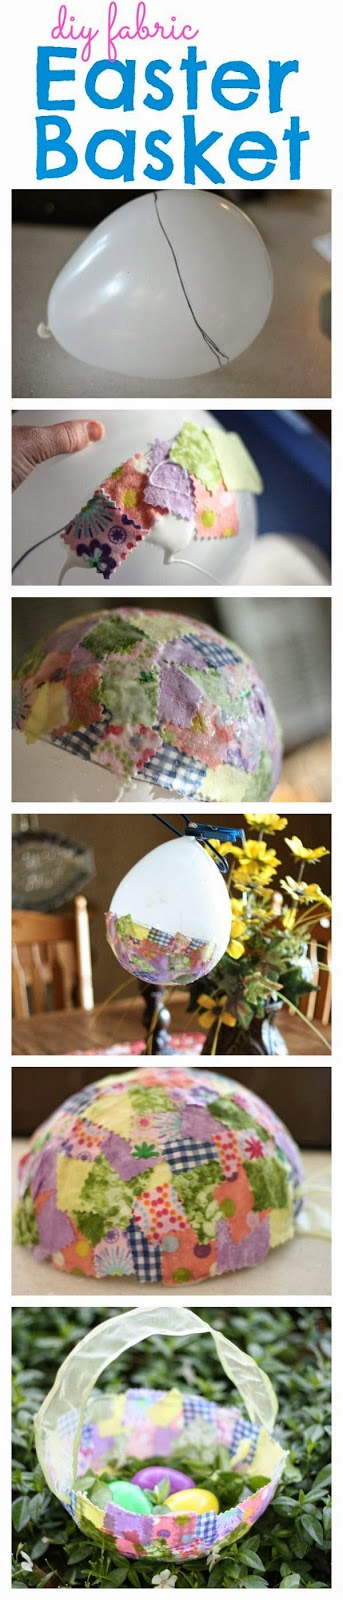 http://www.icanteachmychild.com/2011/04/fabric-collage-easter-baskets/